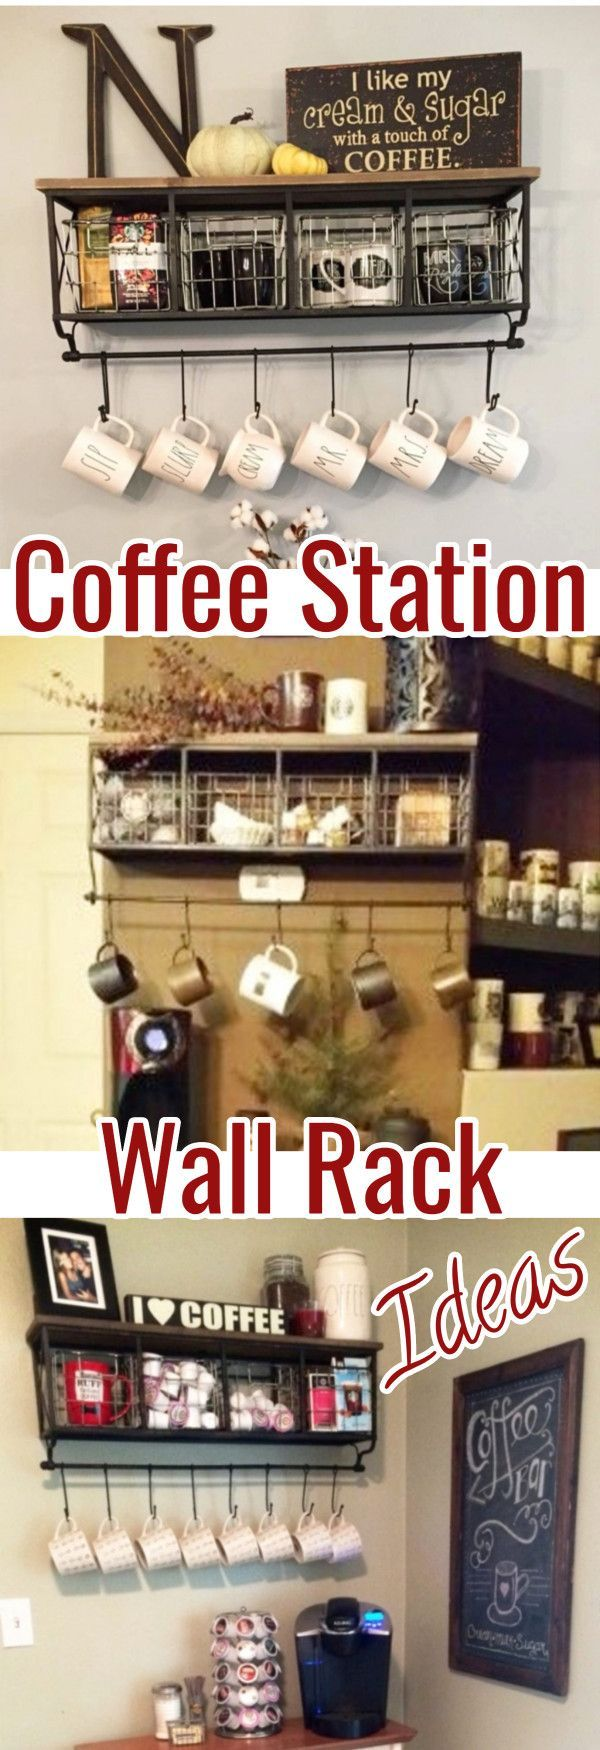 Home Coffee Bars and Kitchen Coffee Station Ideas - Love this coffee bar shelf with hooks (coffee bar mug rack).  One shelf and SO many great DIY ways to use in your kitchen coffee nook!